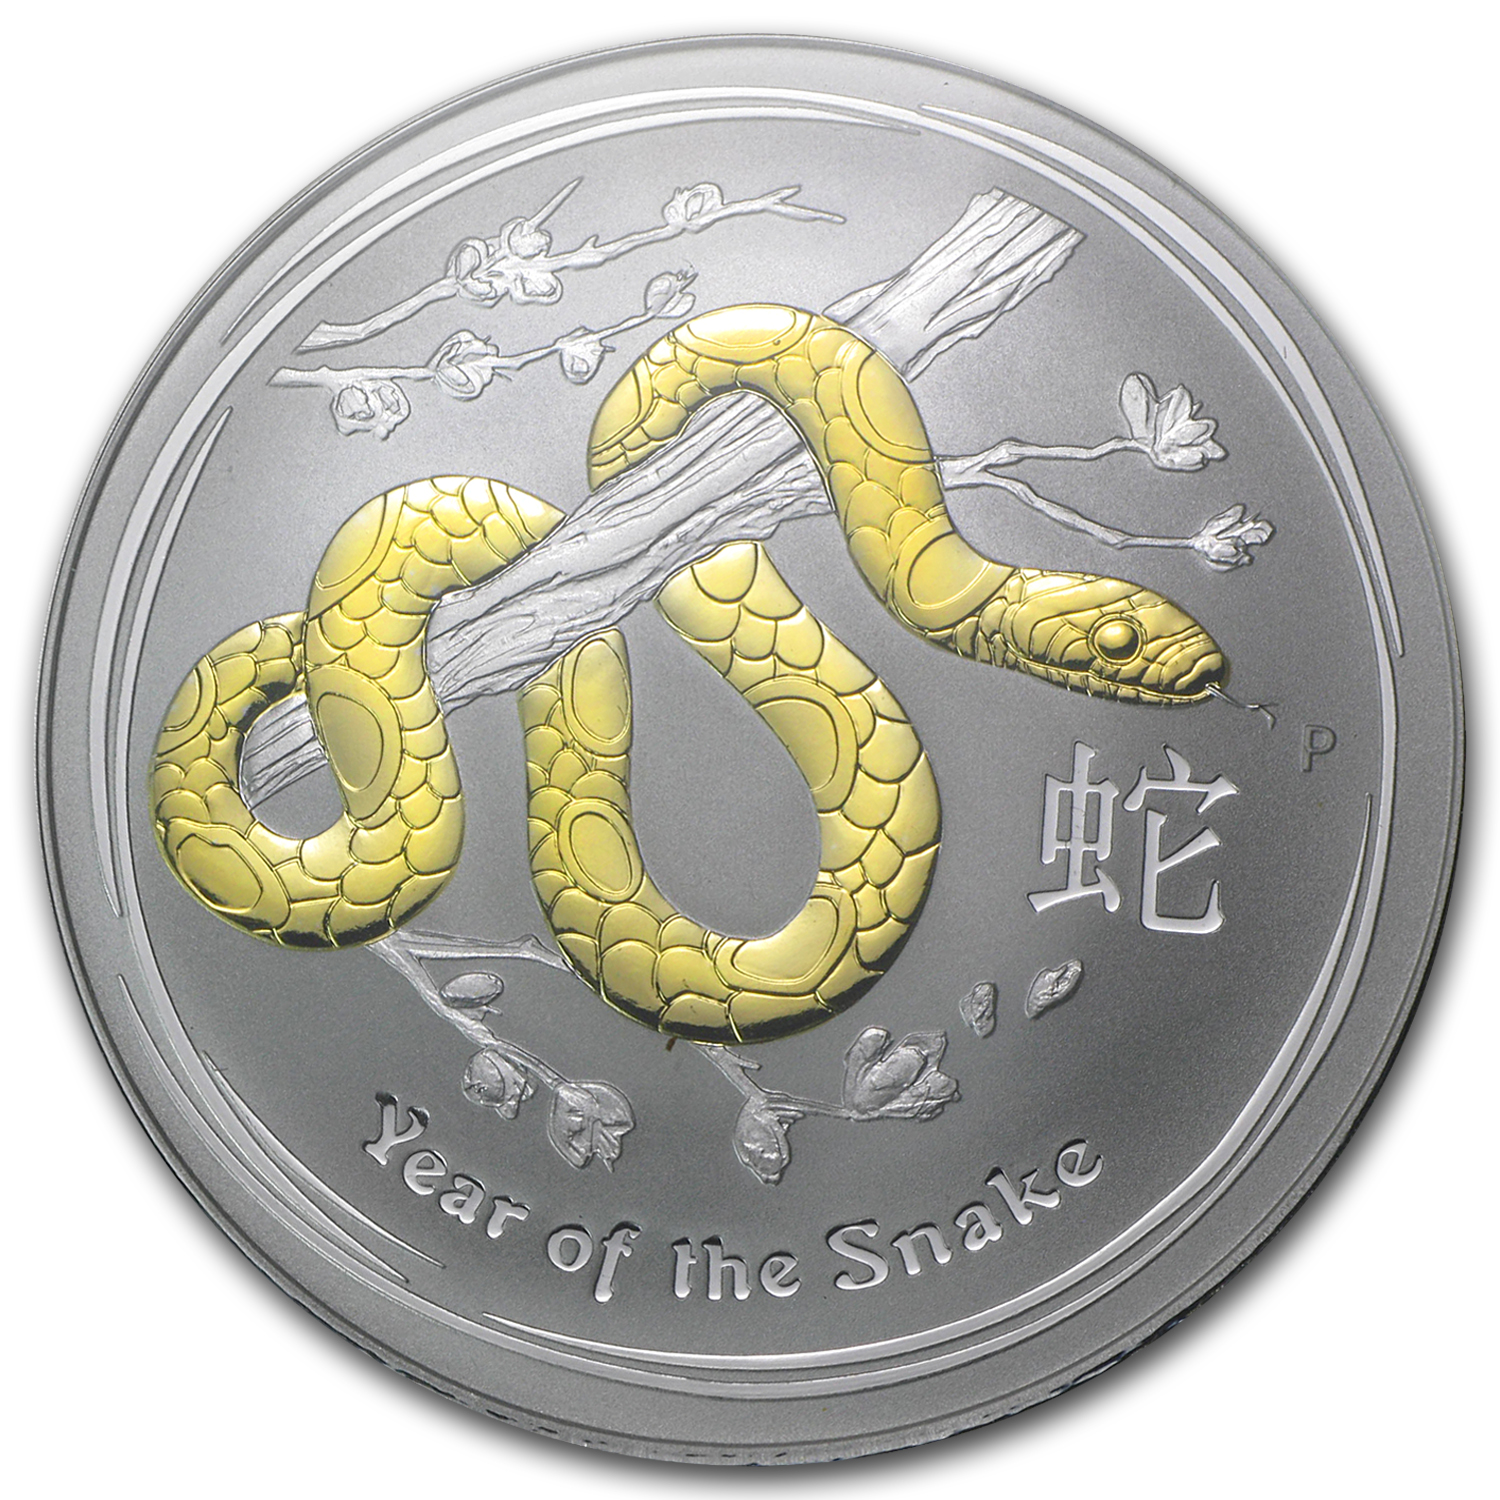 2013 Australia 1 oz Silver Year of the Snake MS-70 (FS, Gilded)